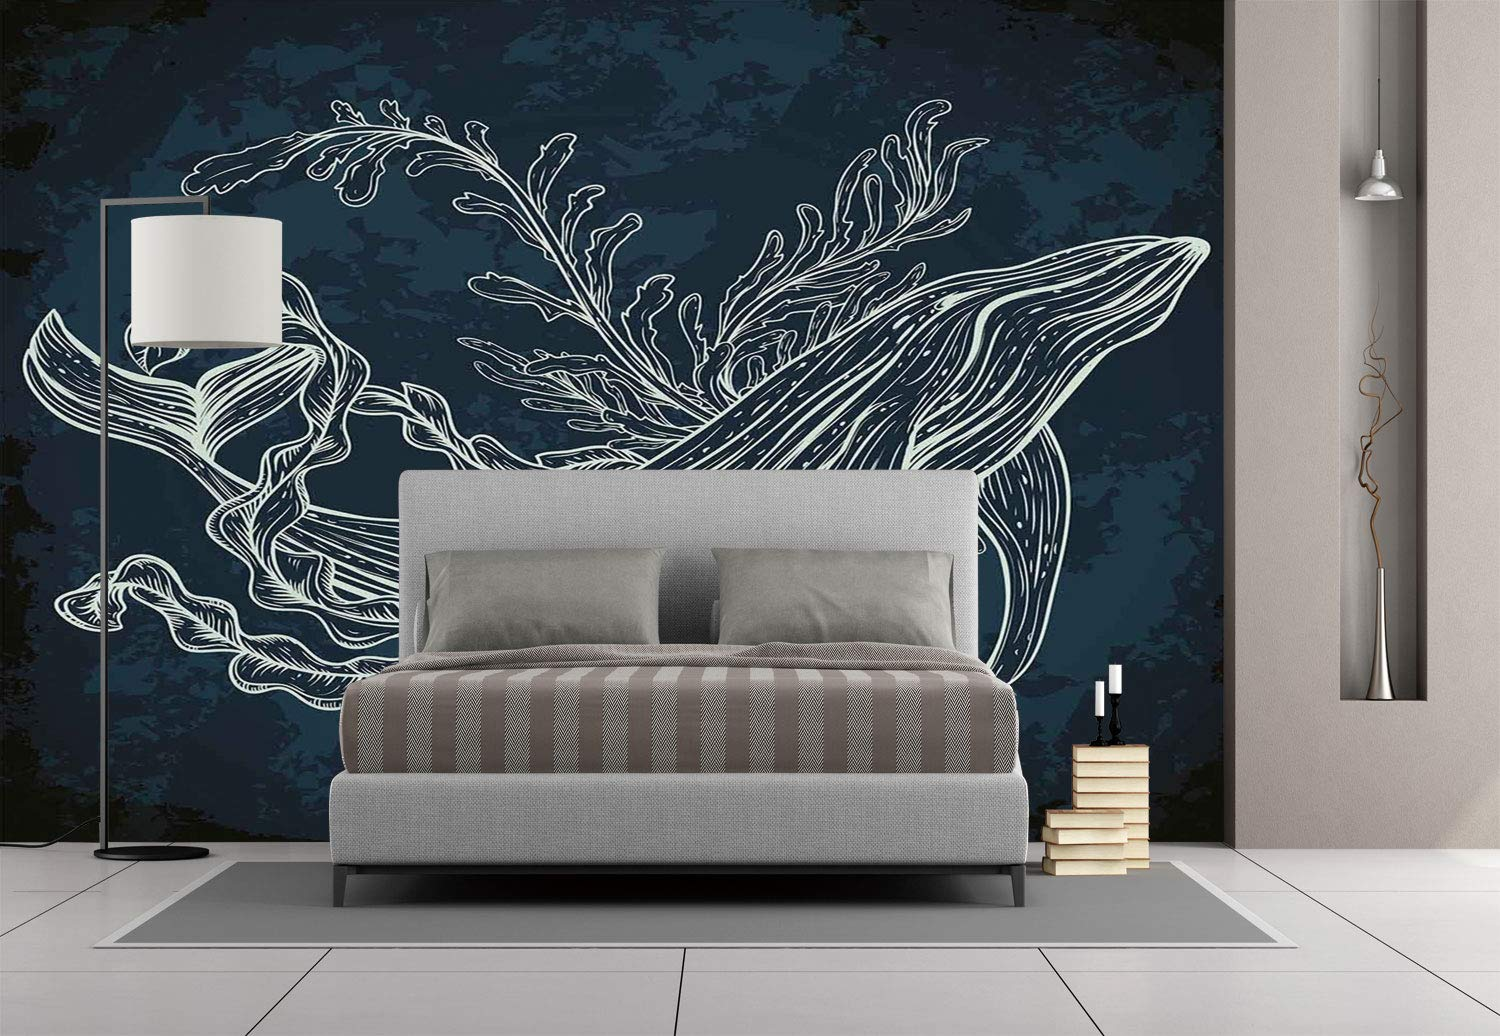 Of Whale In Doodle Style With Coral Reef And Seaweeds - Noah Ark Wall Decoration , HD Wallpaper & Backgrounds